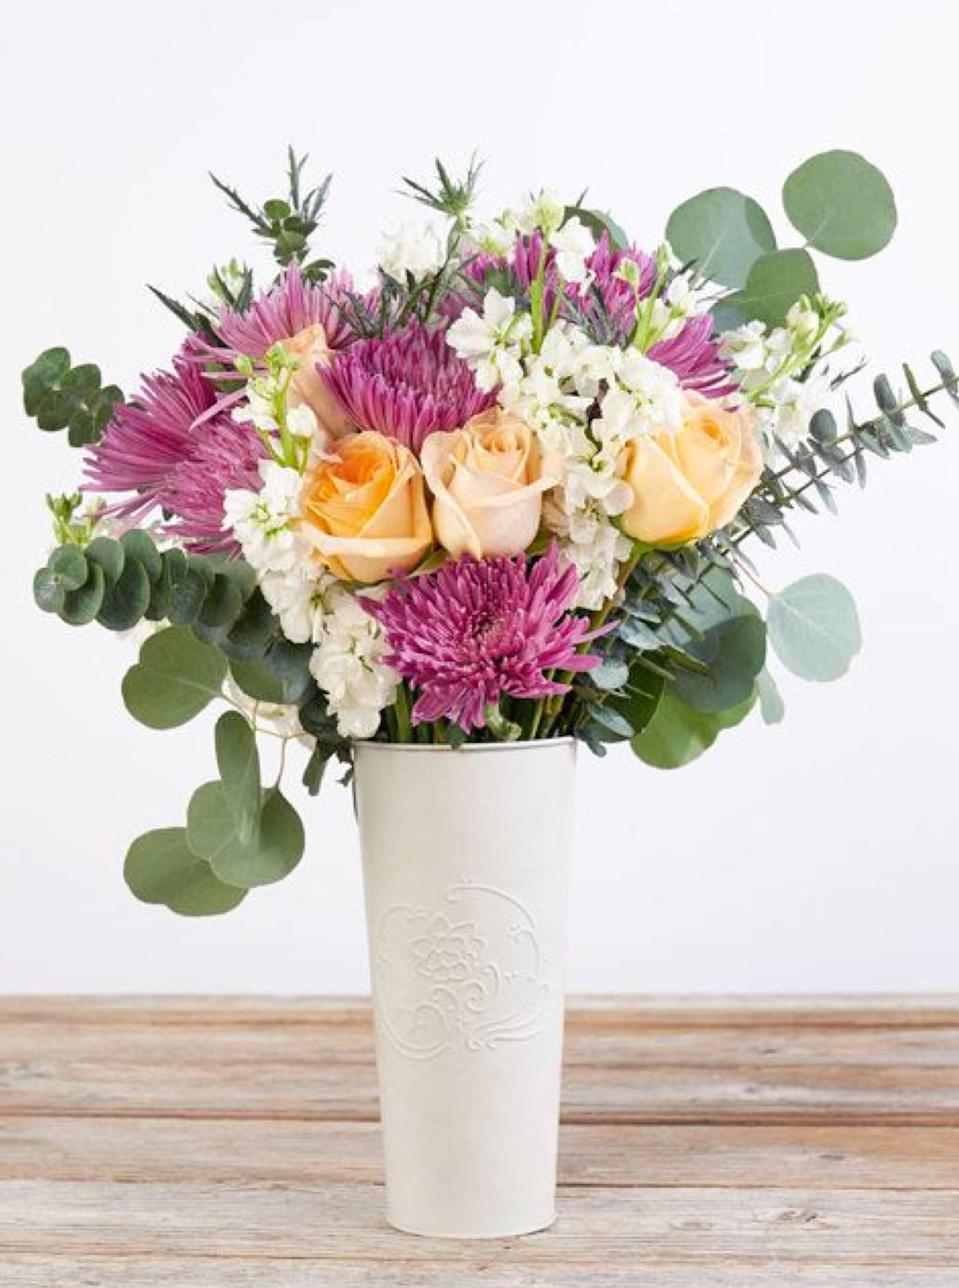 """Consider getting Mom a gift that repeats itself—meaning a monthly flower subscription service to The Bouqs Co. The company ships to all 50 states, and the member perks are really good. We're talking 30% off seasonal blooms, plus she can always redirect the gift to friends one month or skip deliveries. $79, Mums for Mom. <a href=""""https://bouqs.com/flowers/tiffani-thiessen/mums-roses-eucalyptus?"""" rel=""""nofollow noopener"""" target=""""_blank"""" data-ylk=""""slk:Get it now!"""" class=""""link rapid-noclick-resp"""">Get it now!</a>"""